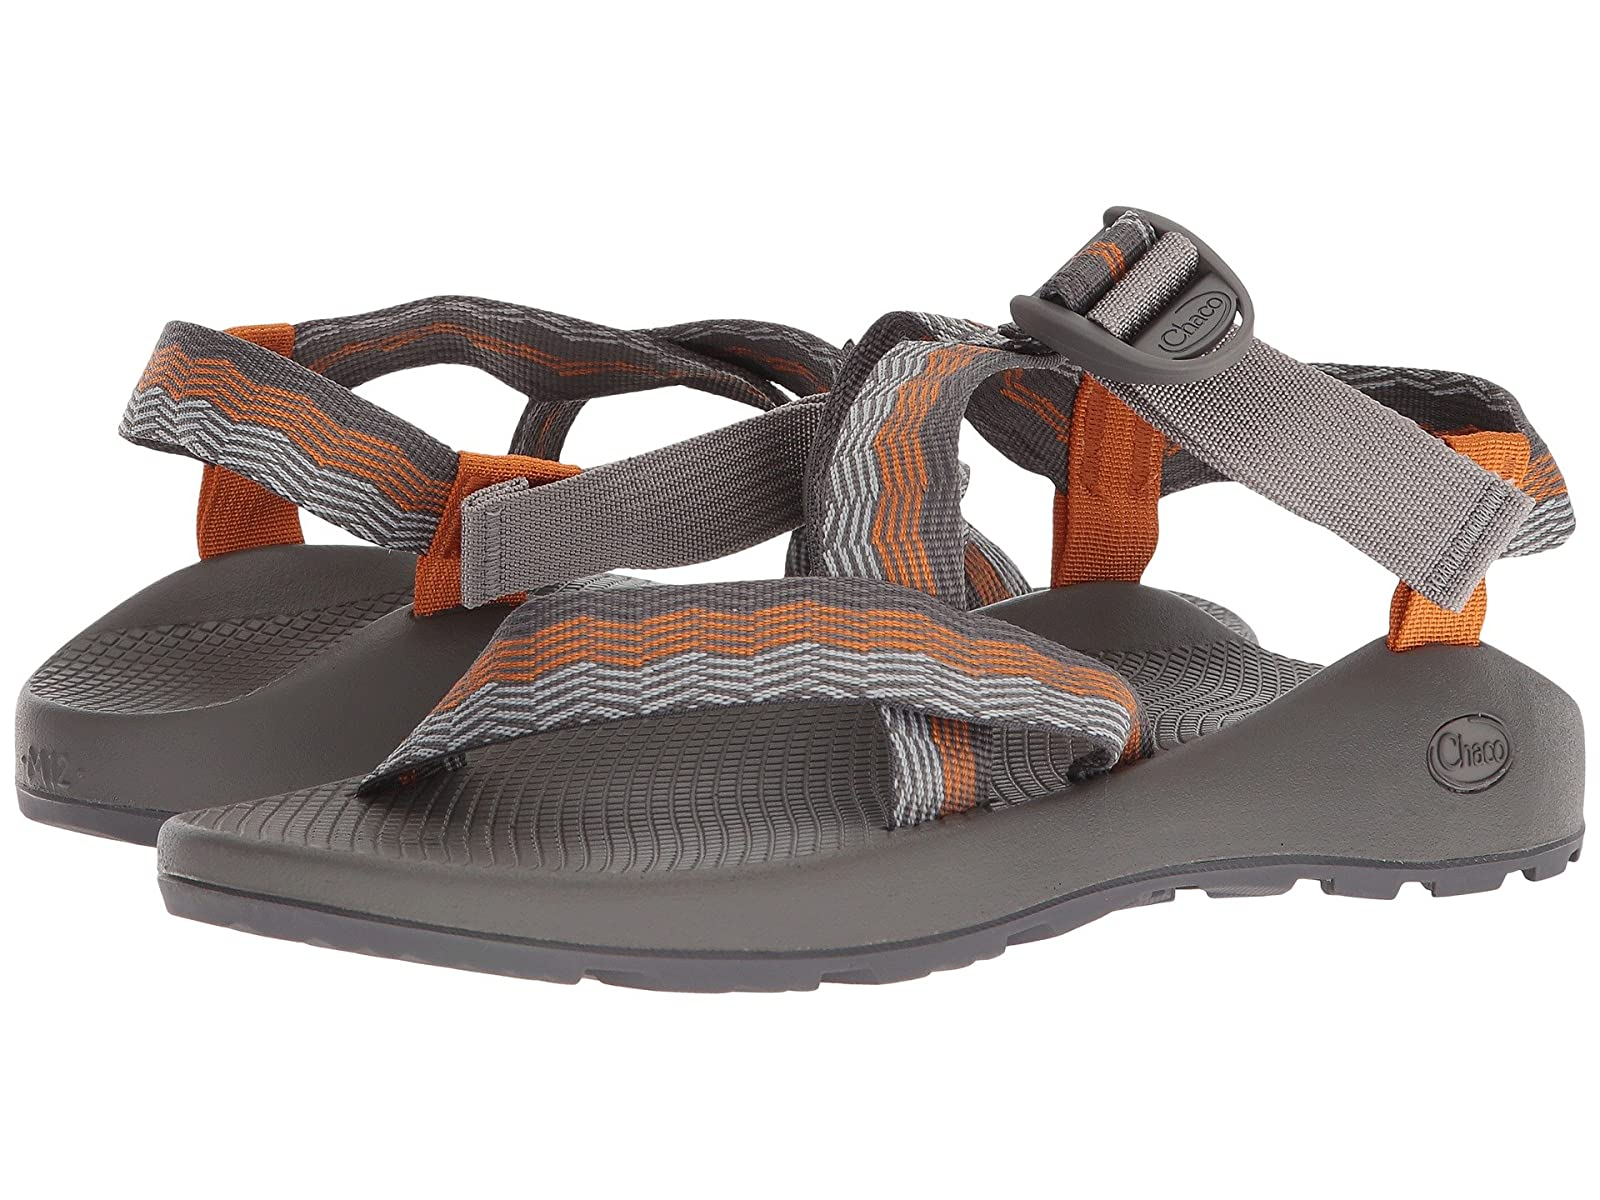 Chaco Z/1® Classic- Classic- Z/1® Special Price -Gentleman/Lady bd26cf